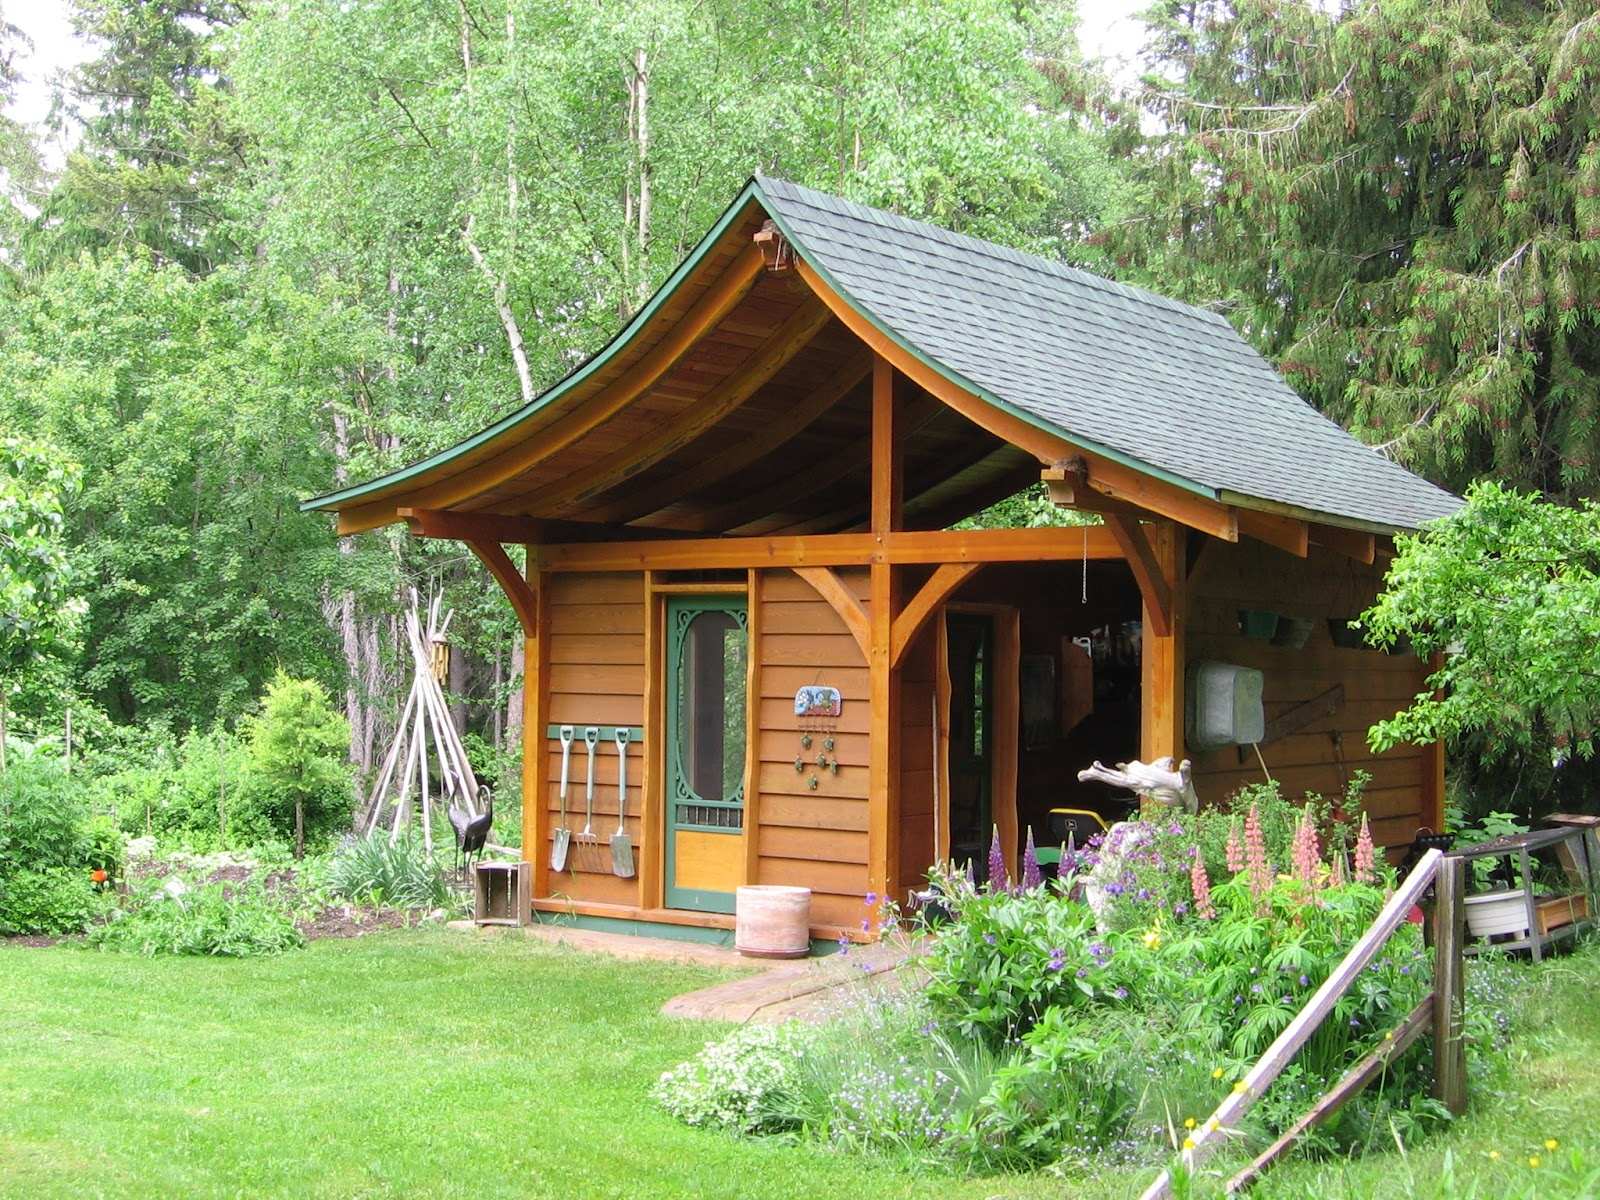 Pictures Of Backyard Garden Sheds : Backyard Garden Shed  Queries You Needto Remedy Before Utilizing Shed